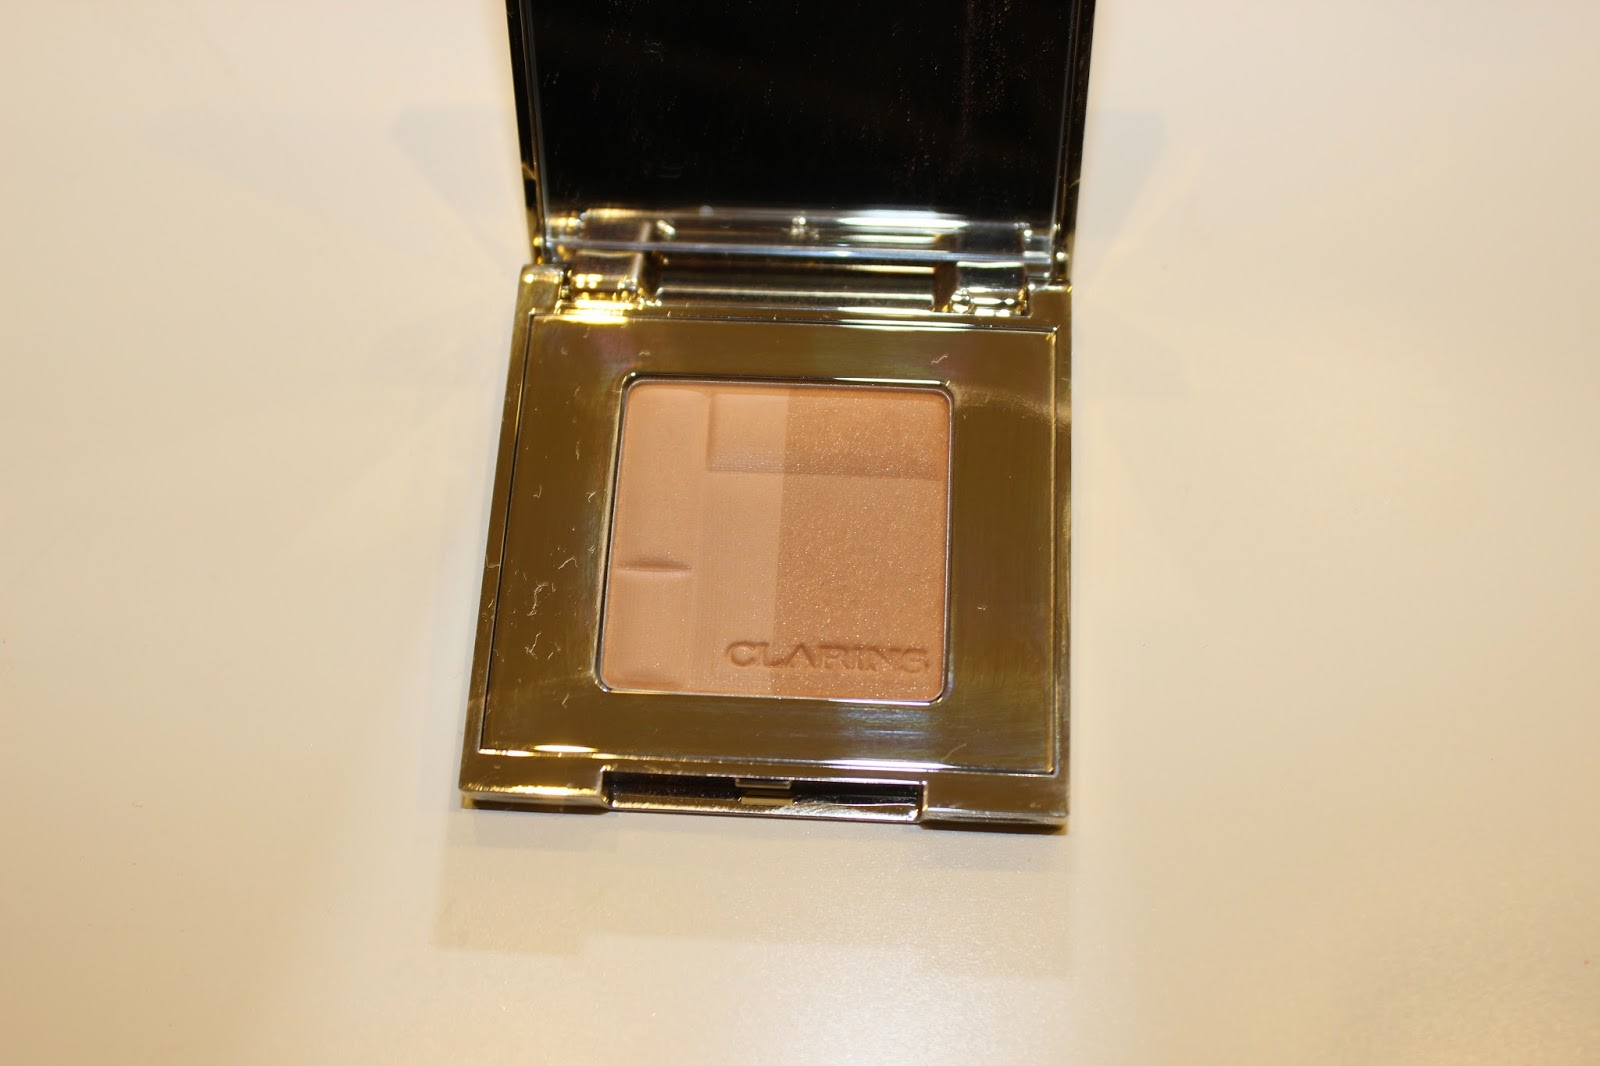 Clarins Bronzing duo Mineral Powder in Light